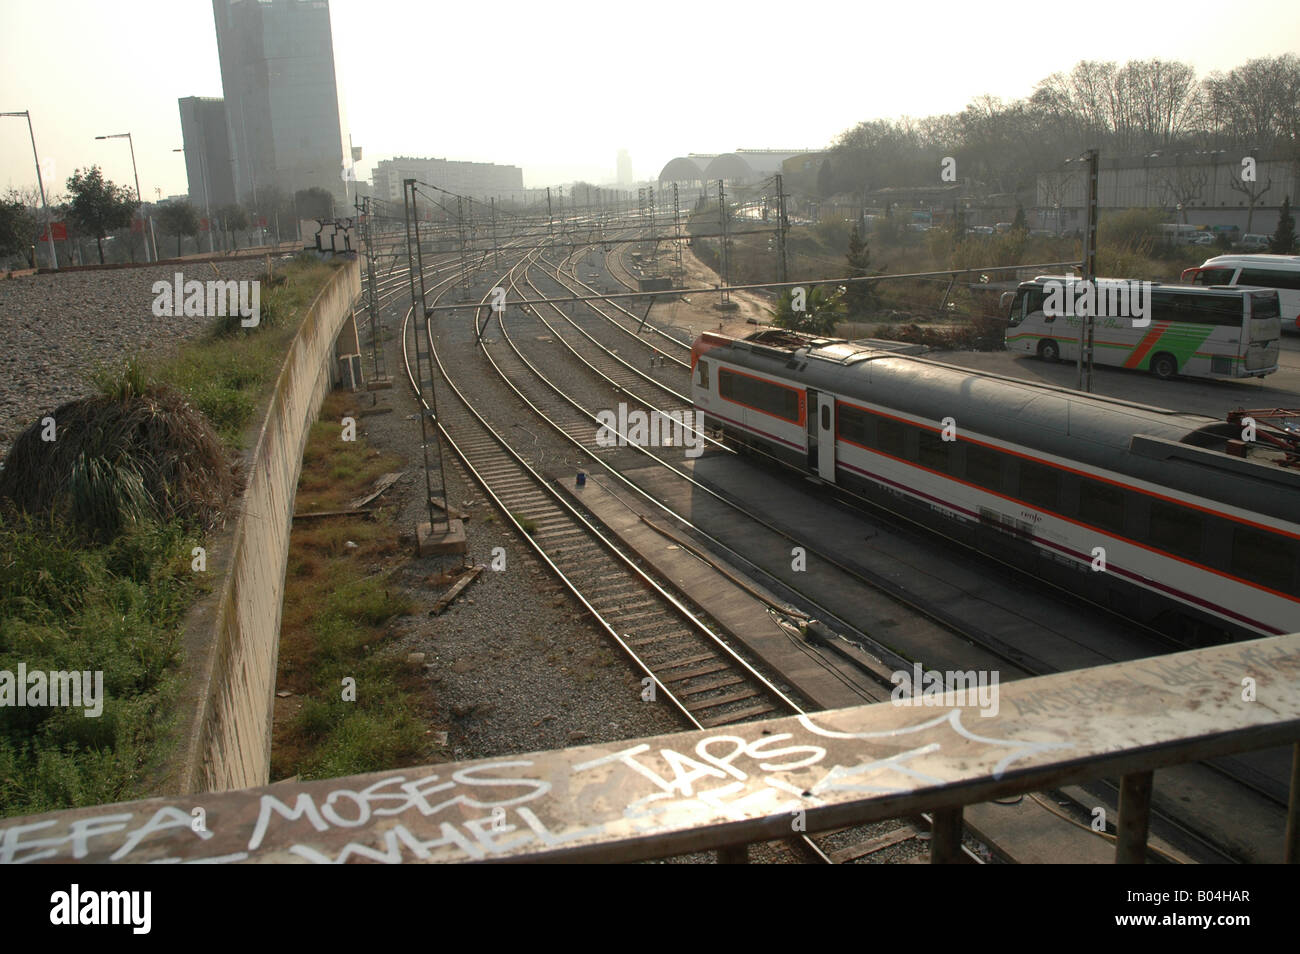 Bahnanlage railway construction Gleise rails Stadt city town urban - Stock Image